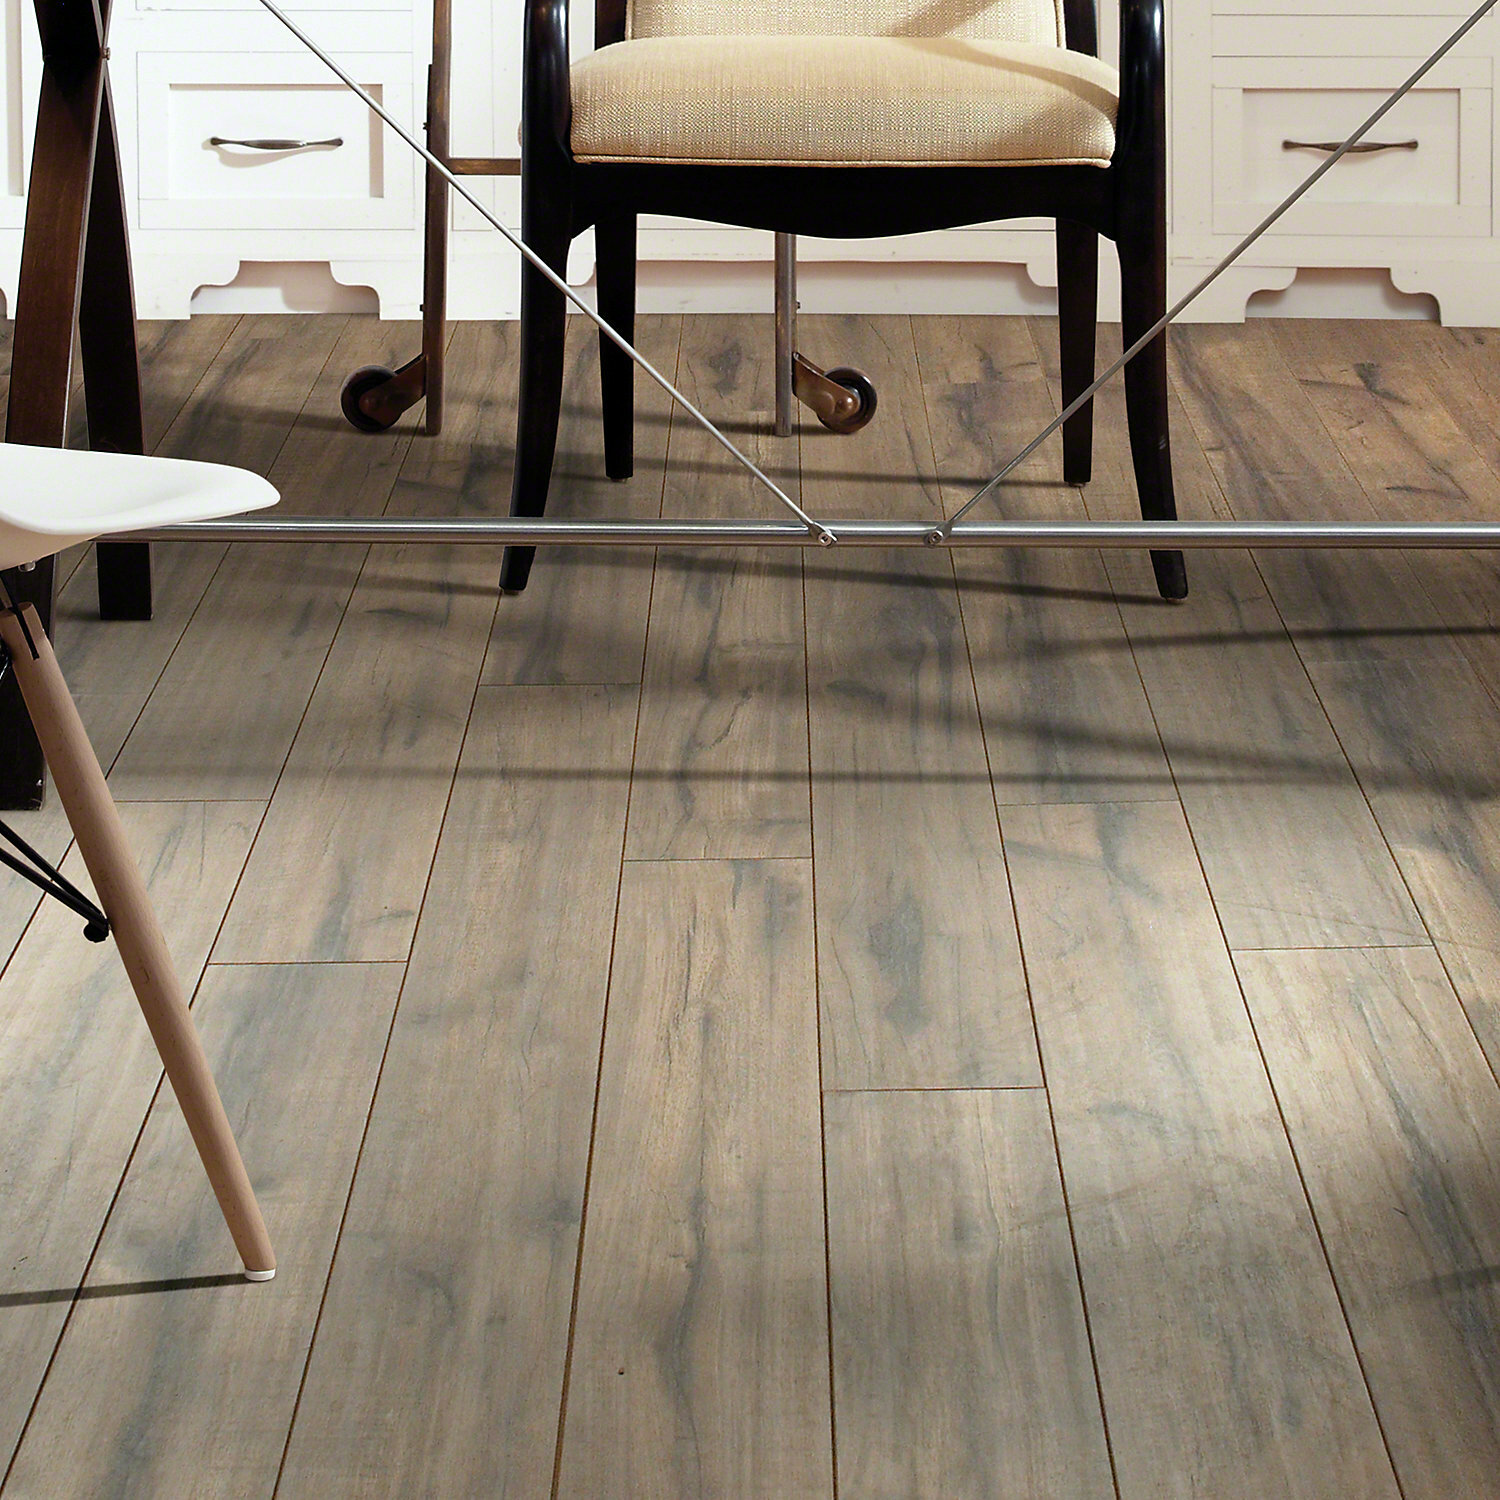 Shaw Floors Timberline Lincolnshire 5 X 48 12mm Laminate Flooring In Ravendale Reviews Wayfair